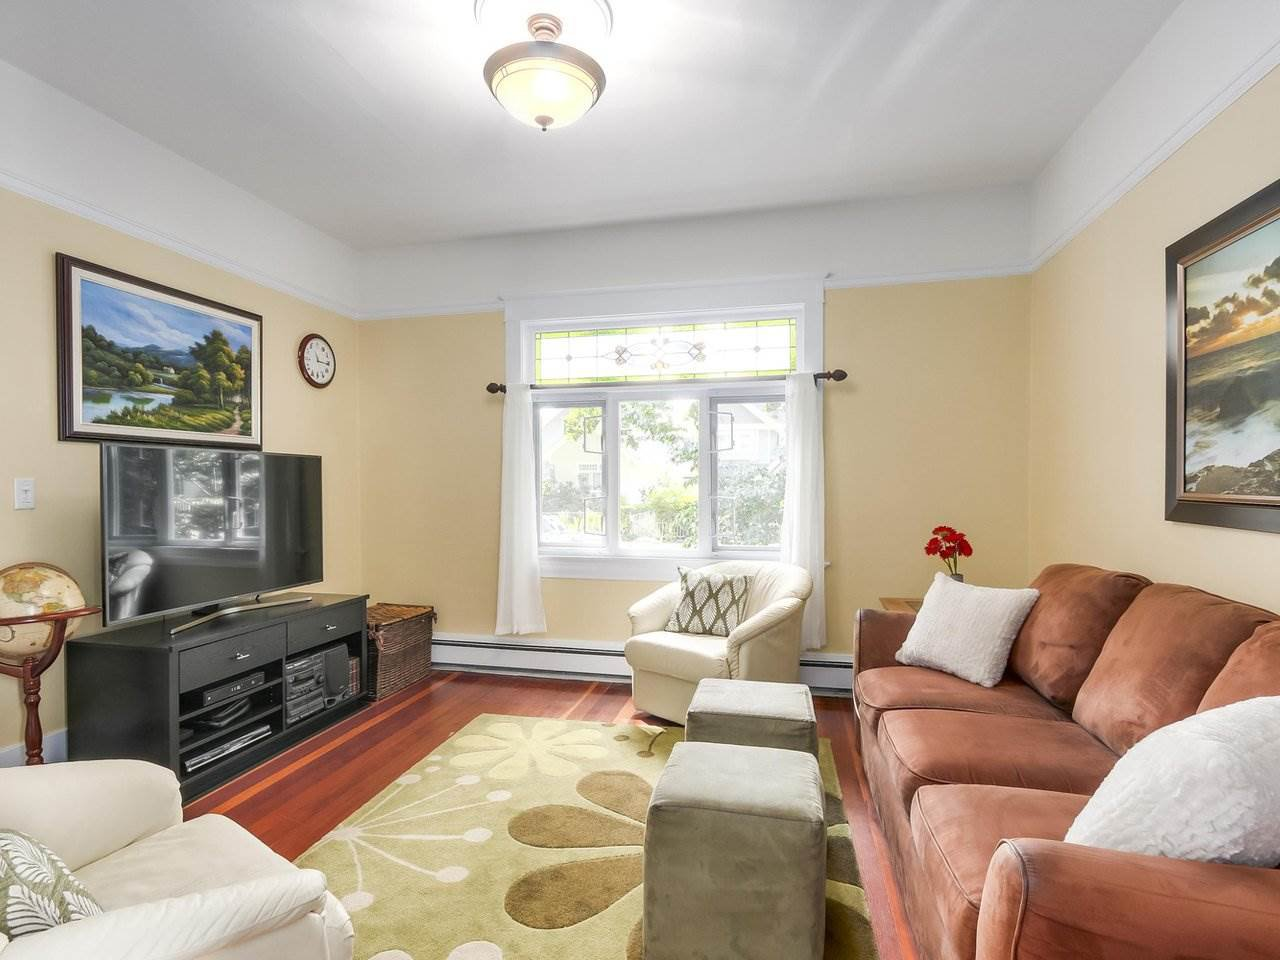 Photo 4: Photos: 1761 E 13TH AVENUE in Vancouver: Grandview VE House for sale (Vancouver East)  : MLS®# R2202018